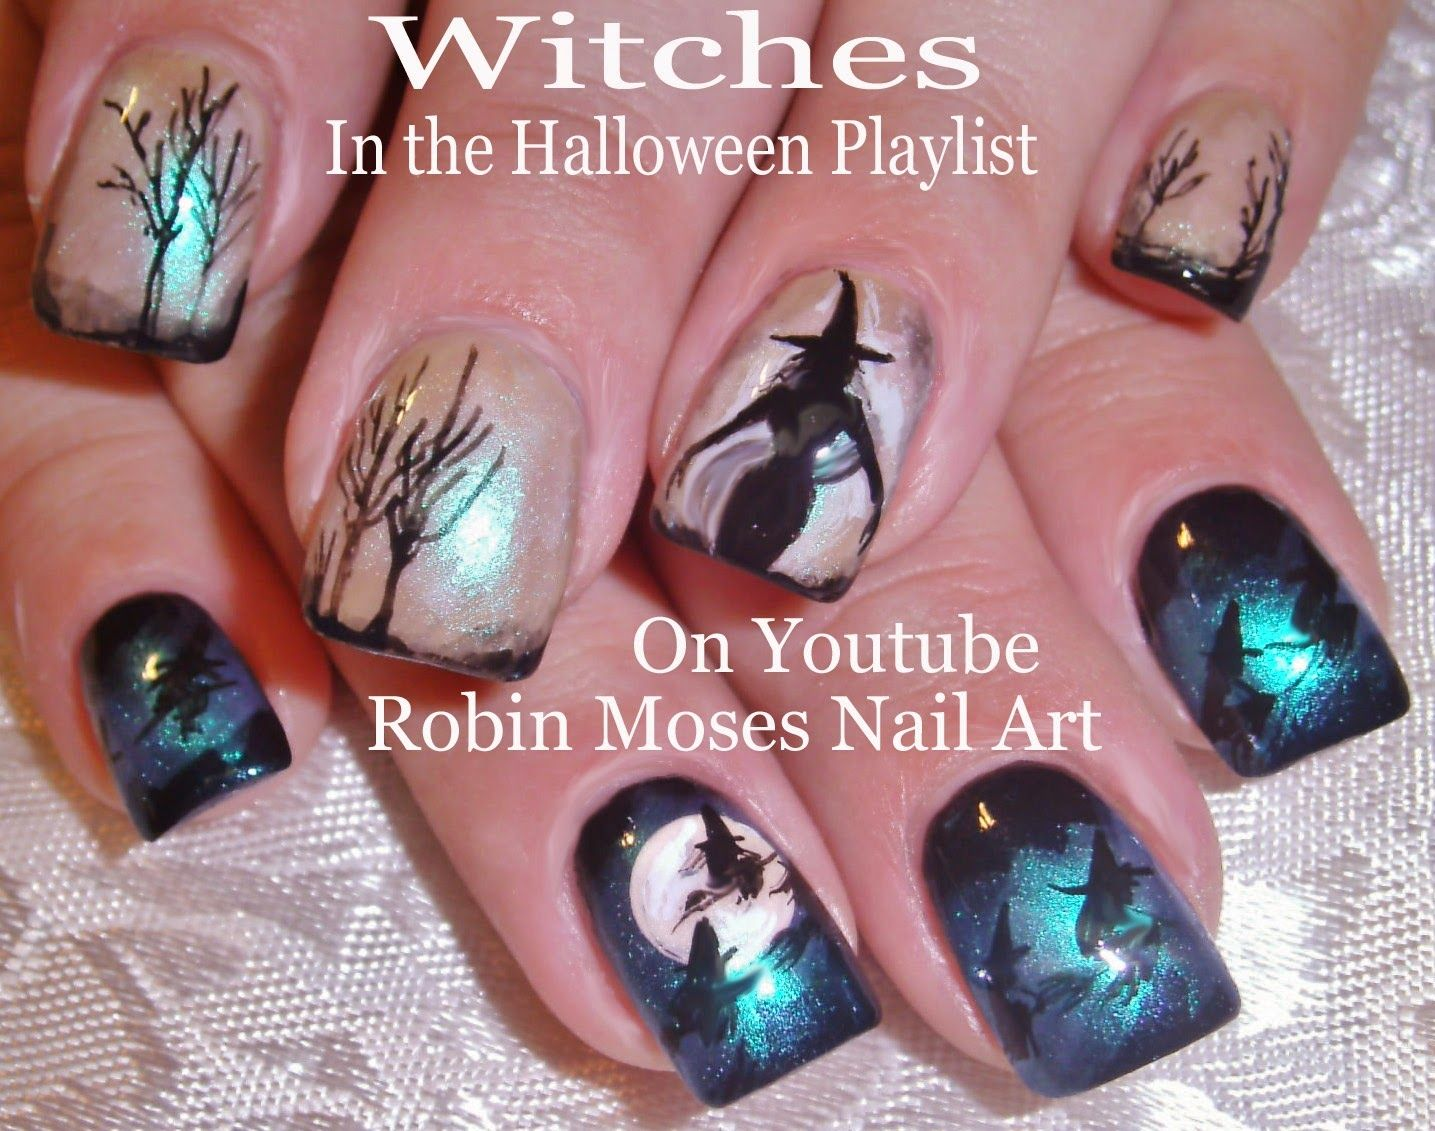 Halloween Nails Halloween Nail Art Witch Nails Witch Clip Art Nail Art Halloween Ideas Nail Art Designs Diy Halloween Nail Designs Witch Nails